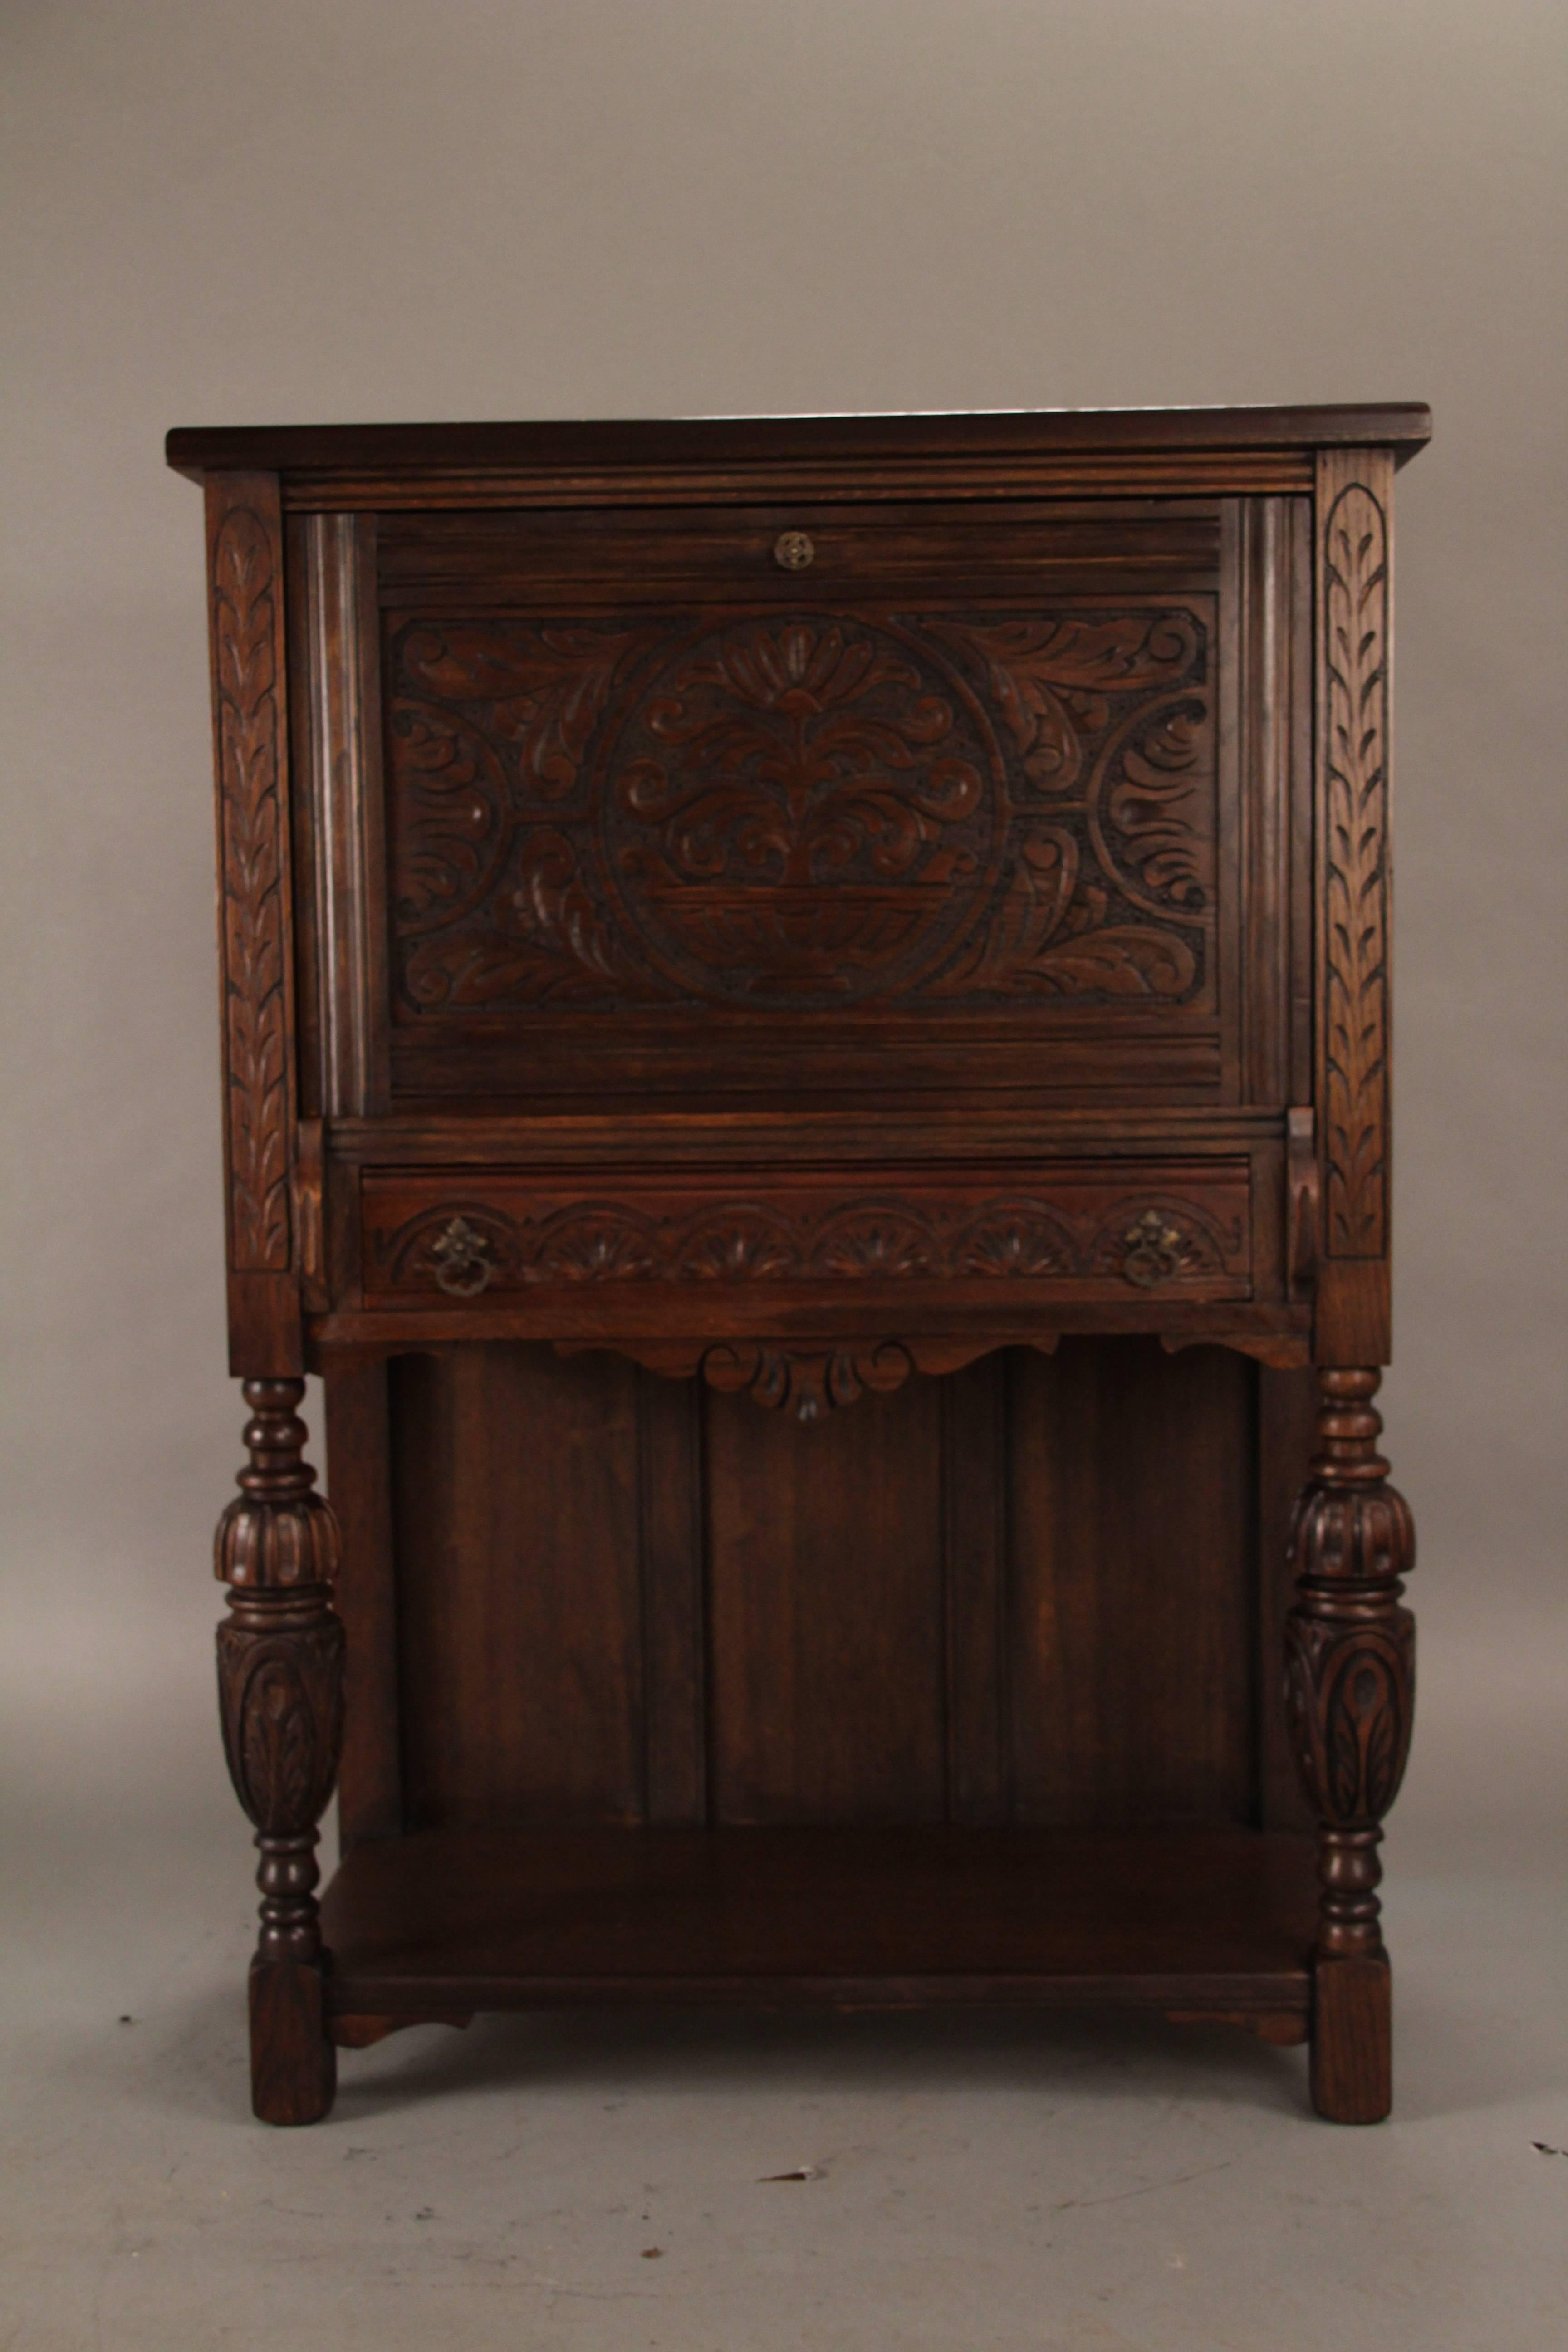 Merveilleux Spanish Colonial Carved Walnut Cabinet/ Writing Desk From The Angelus  Furniture Co, Circa 1920s